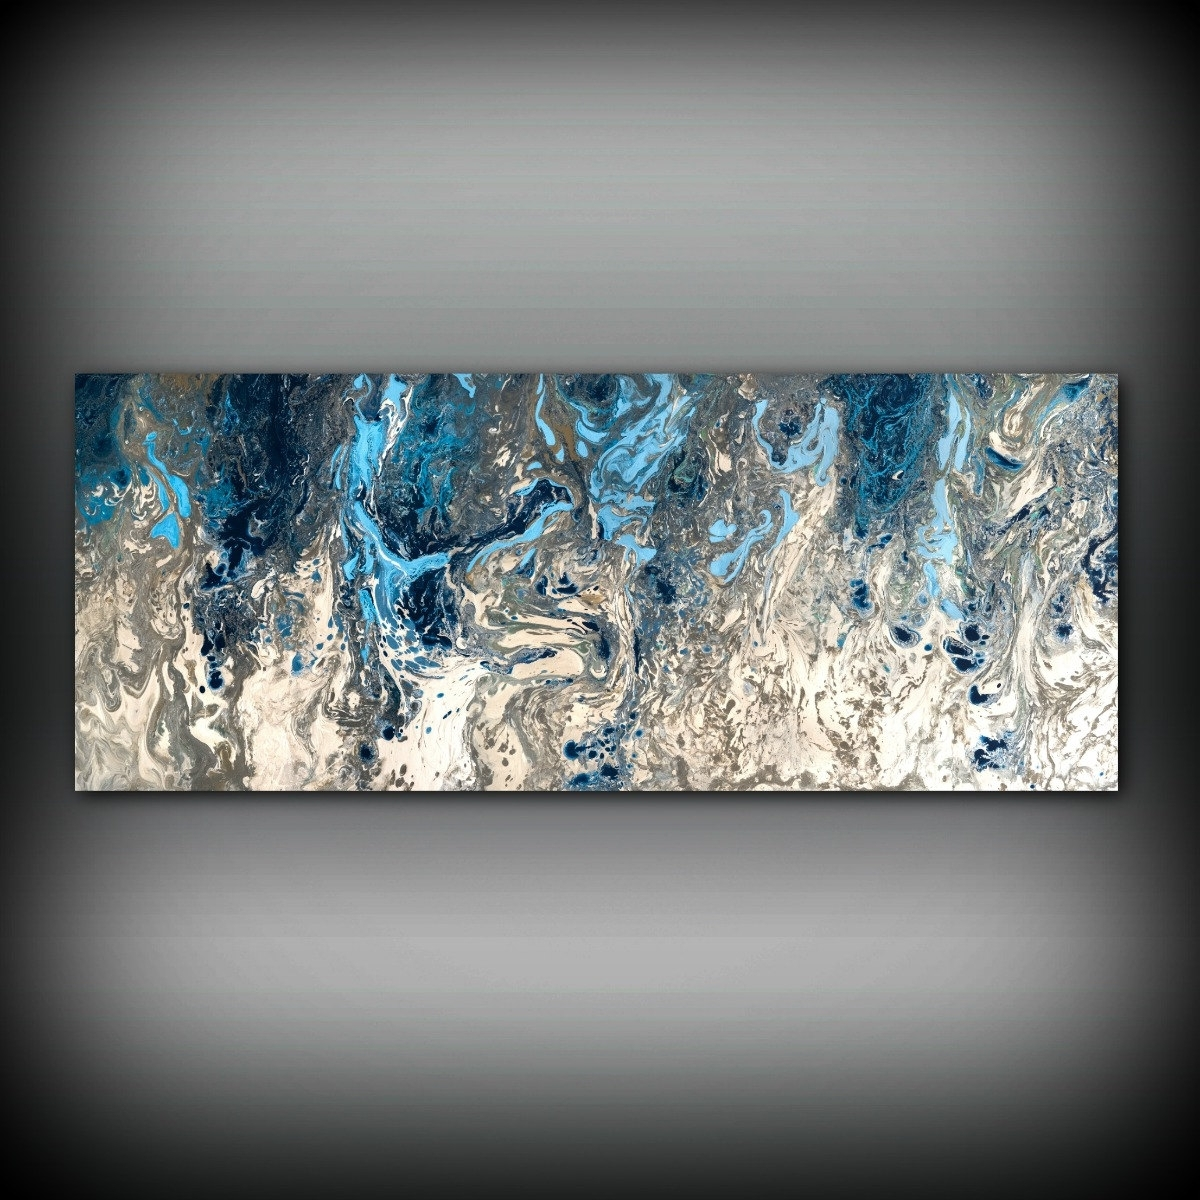 Big Abstract Wall Art Within Preferred Large Abstract Painting Print Navy Blue Print Art Large Canvas Art (View 6 of 15)